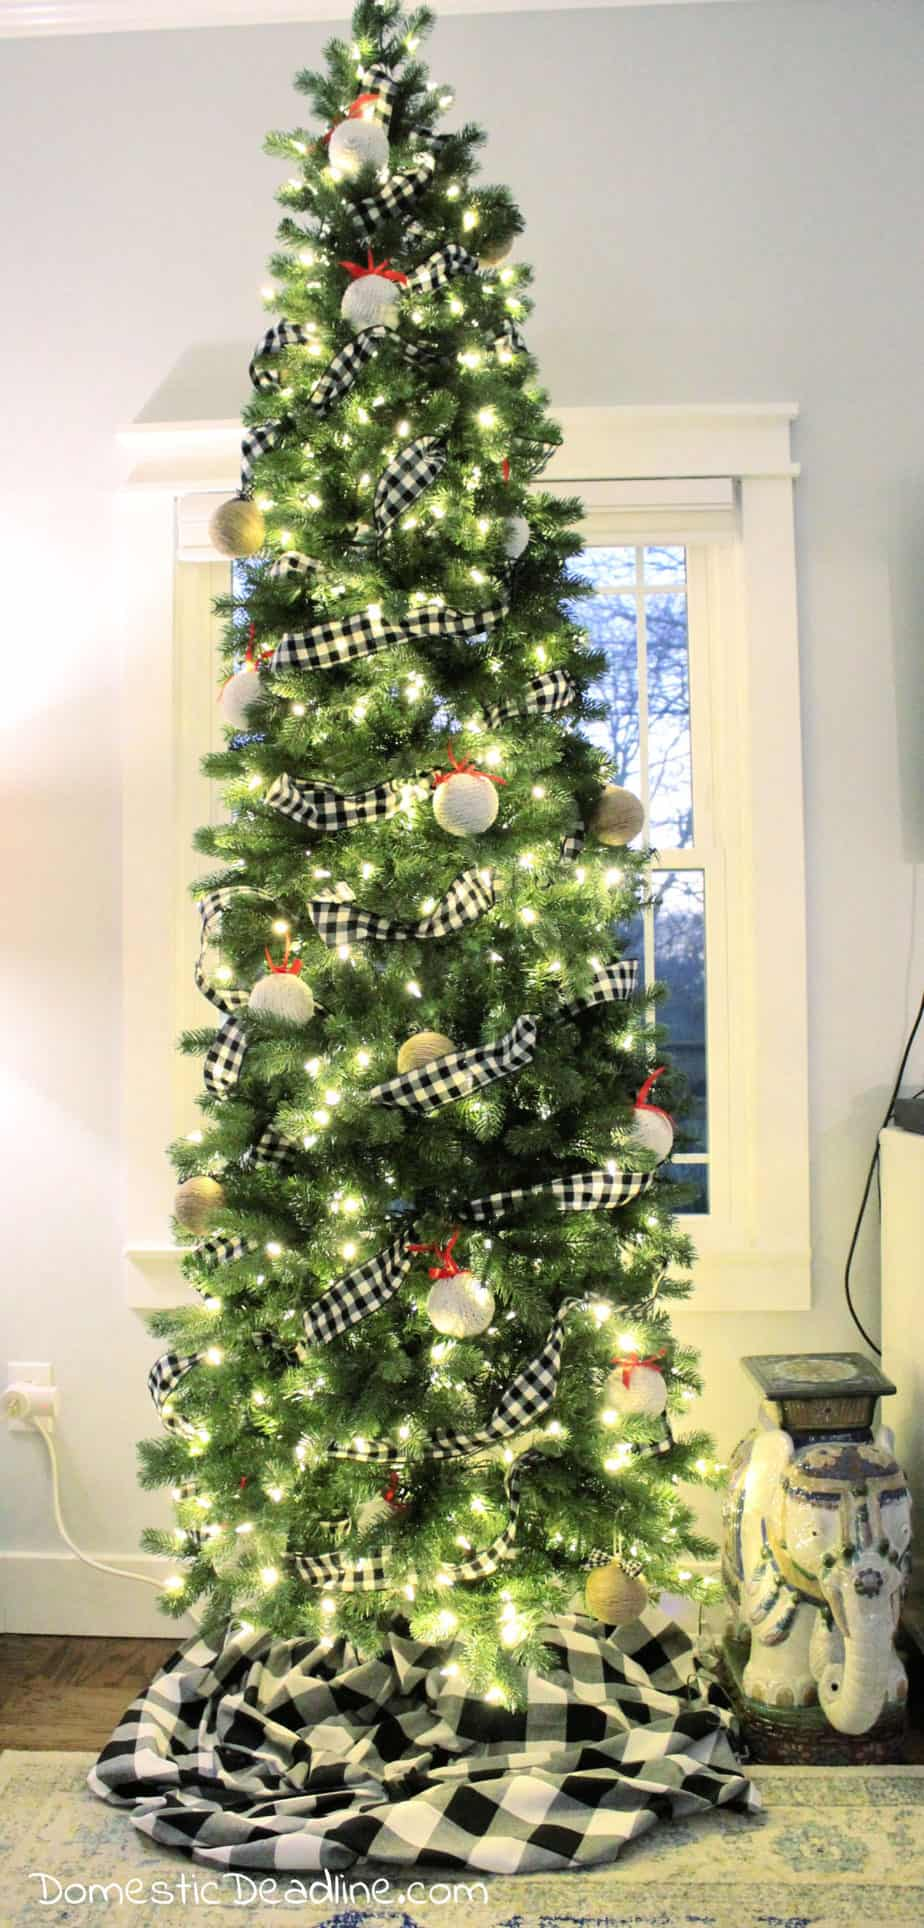 Buffalo Check Christmas Tree Domestic Deadline